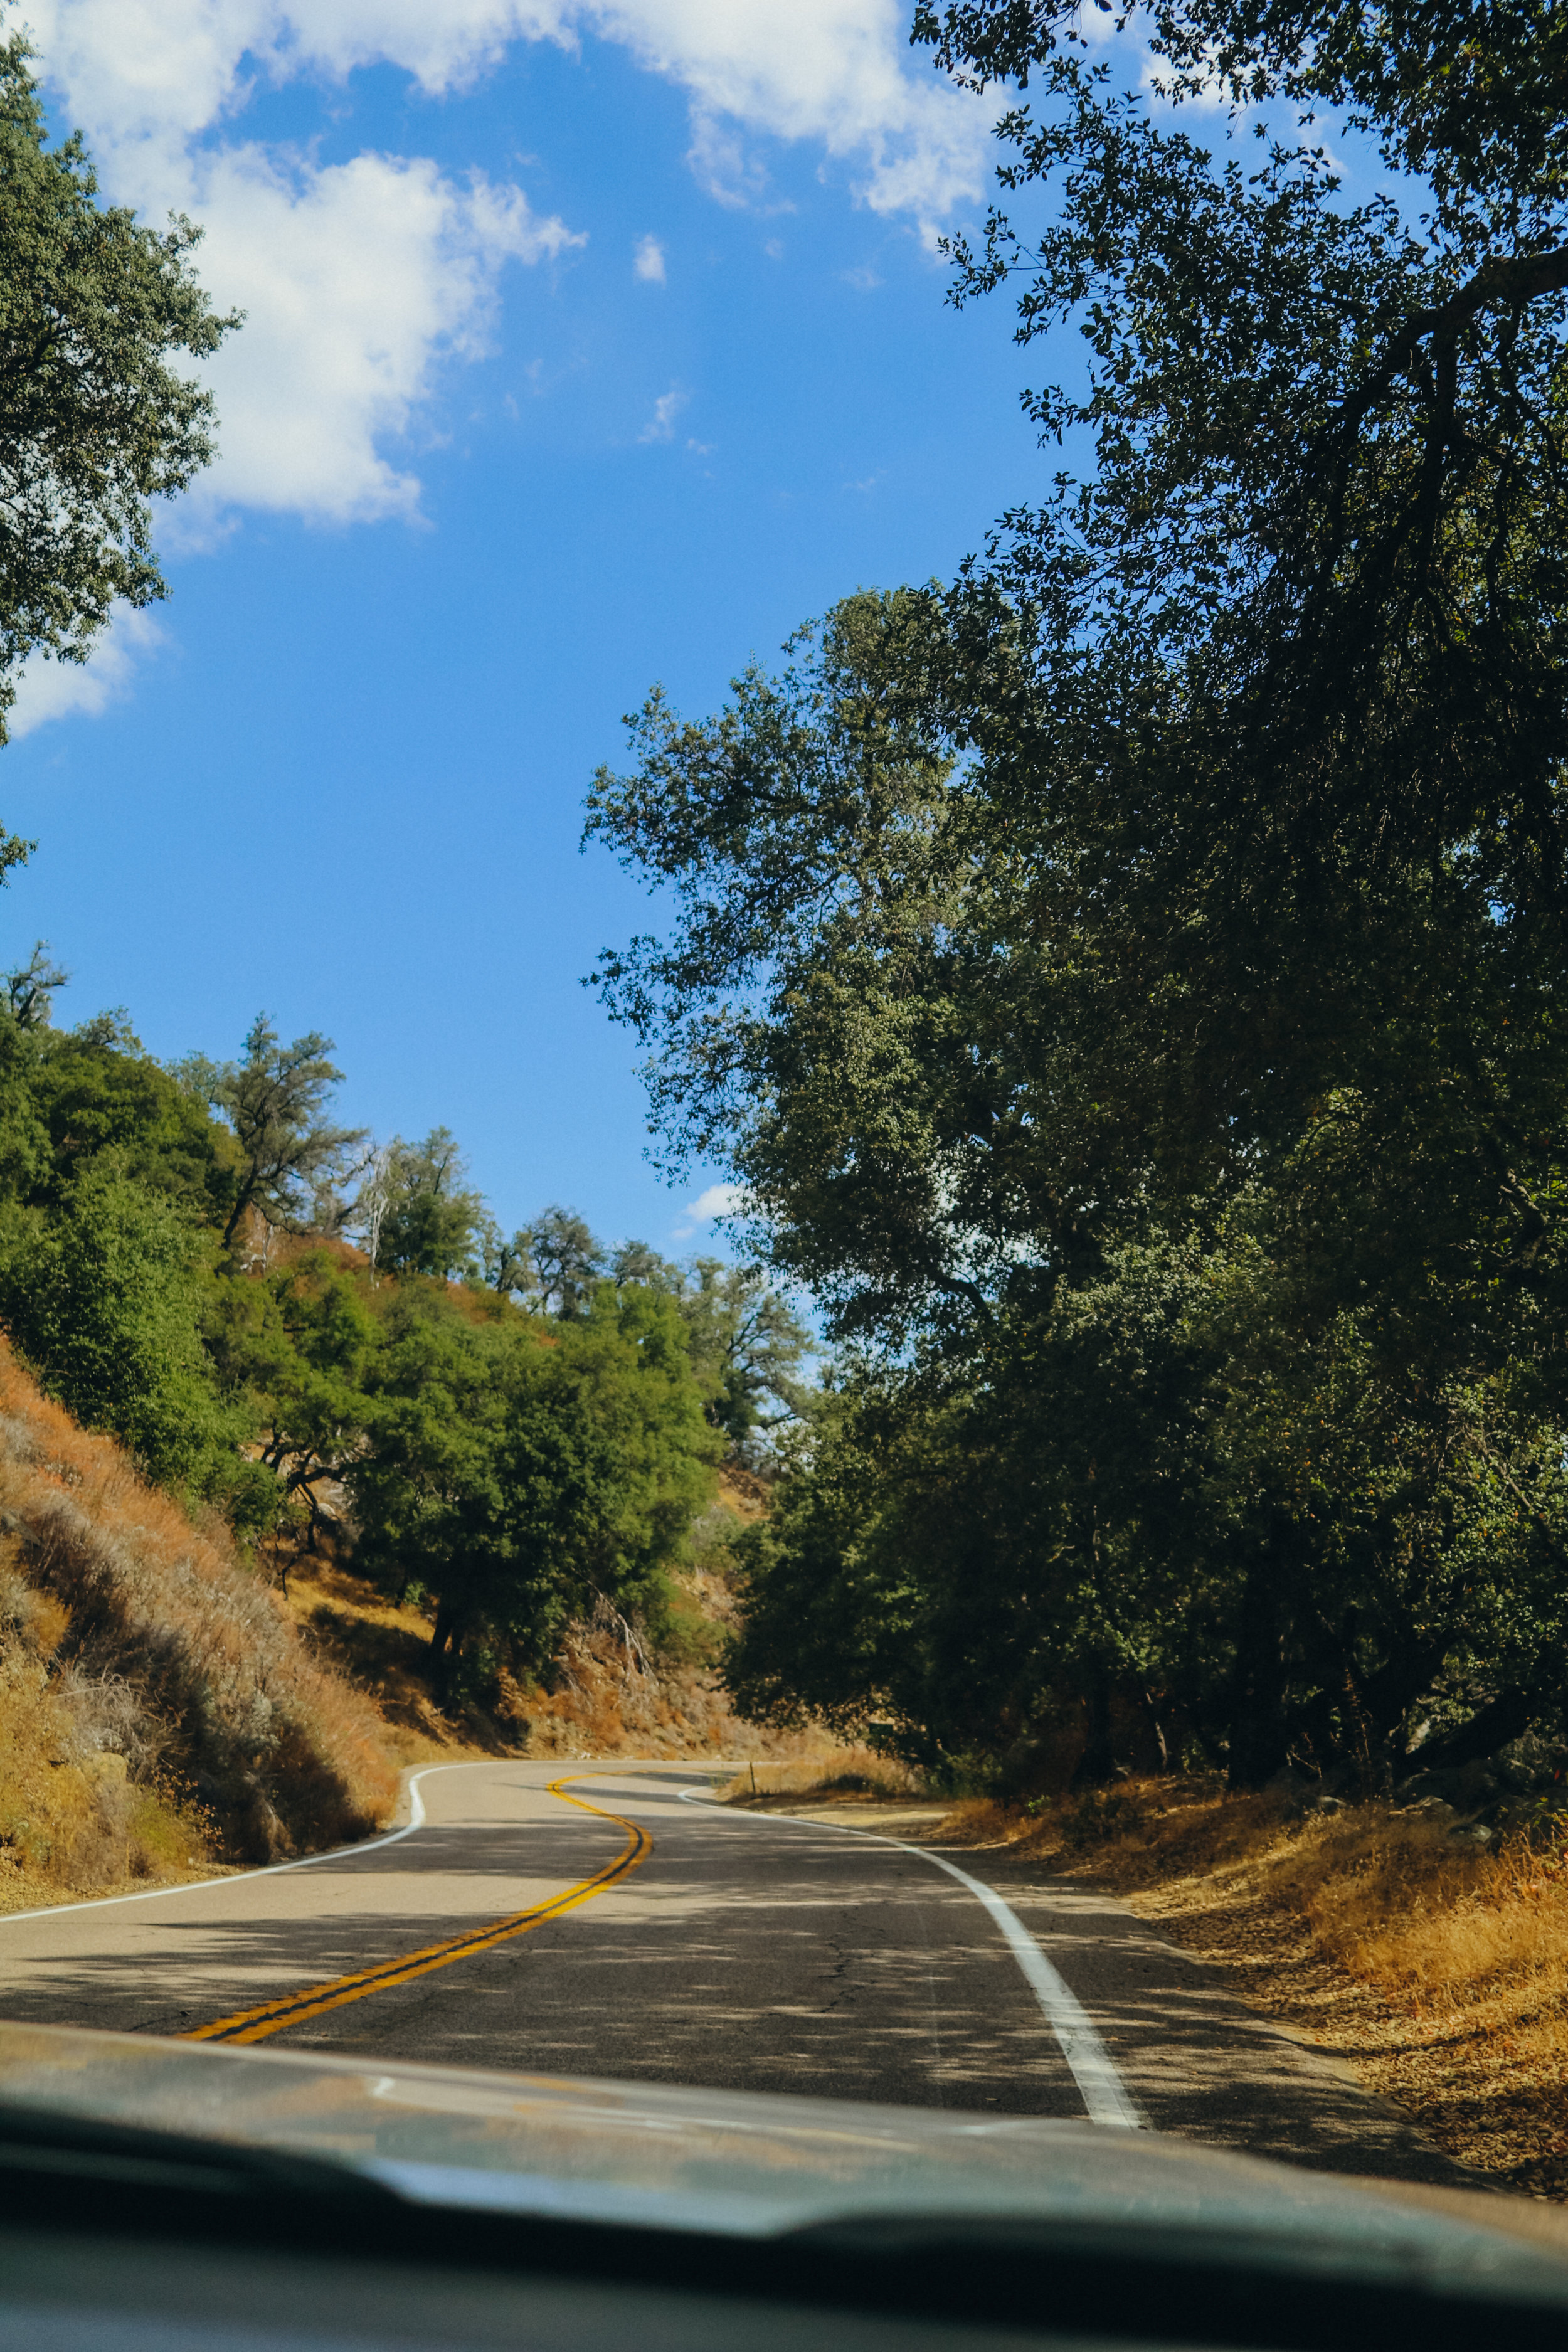 The twisty mountain roads leading to the summit of Palomar